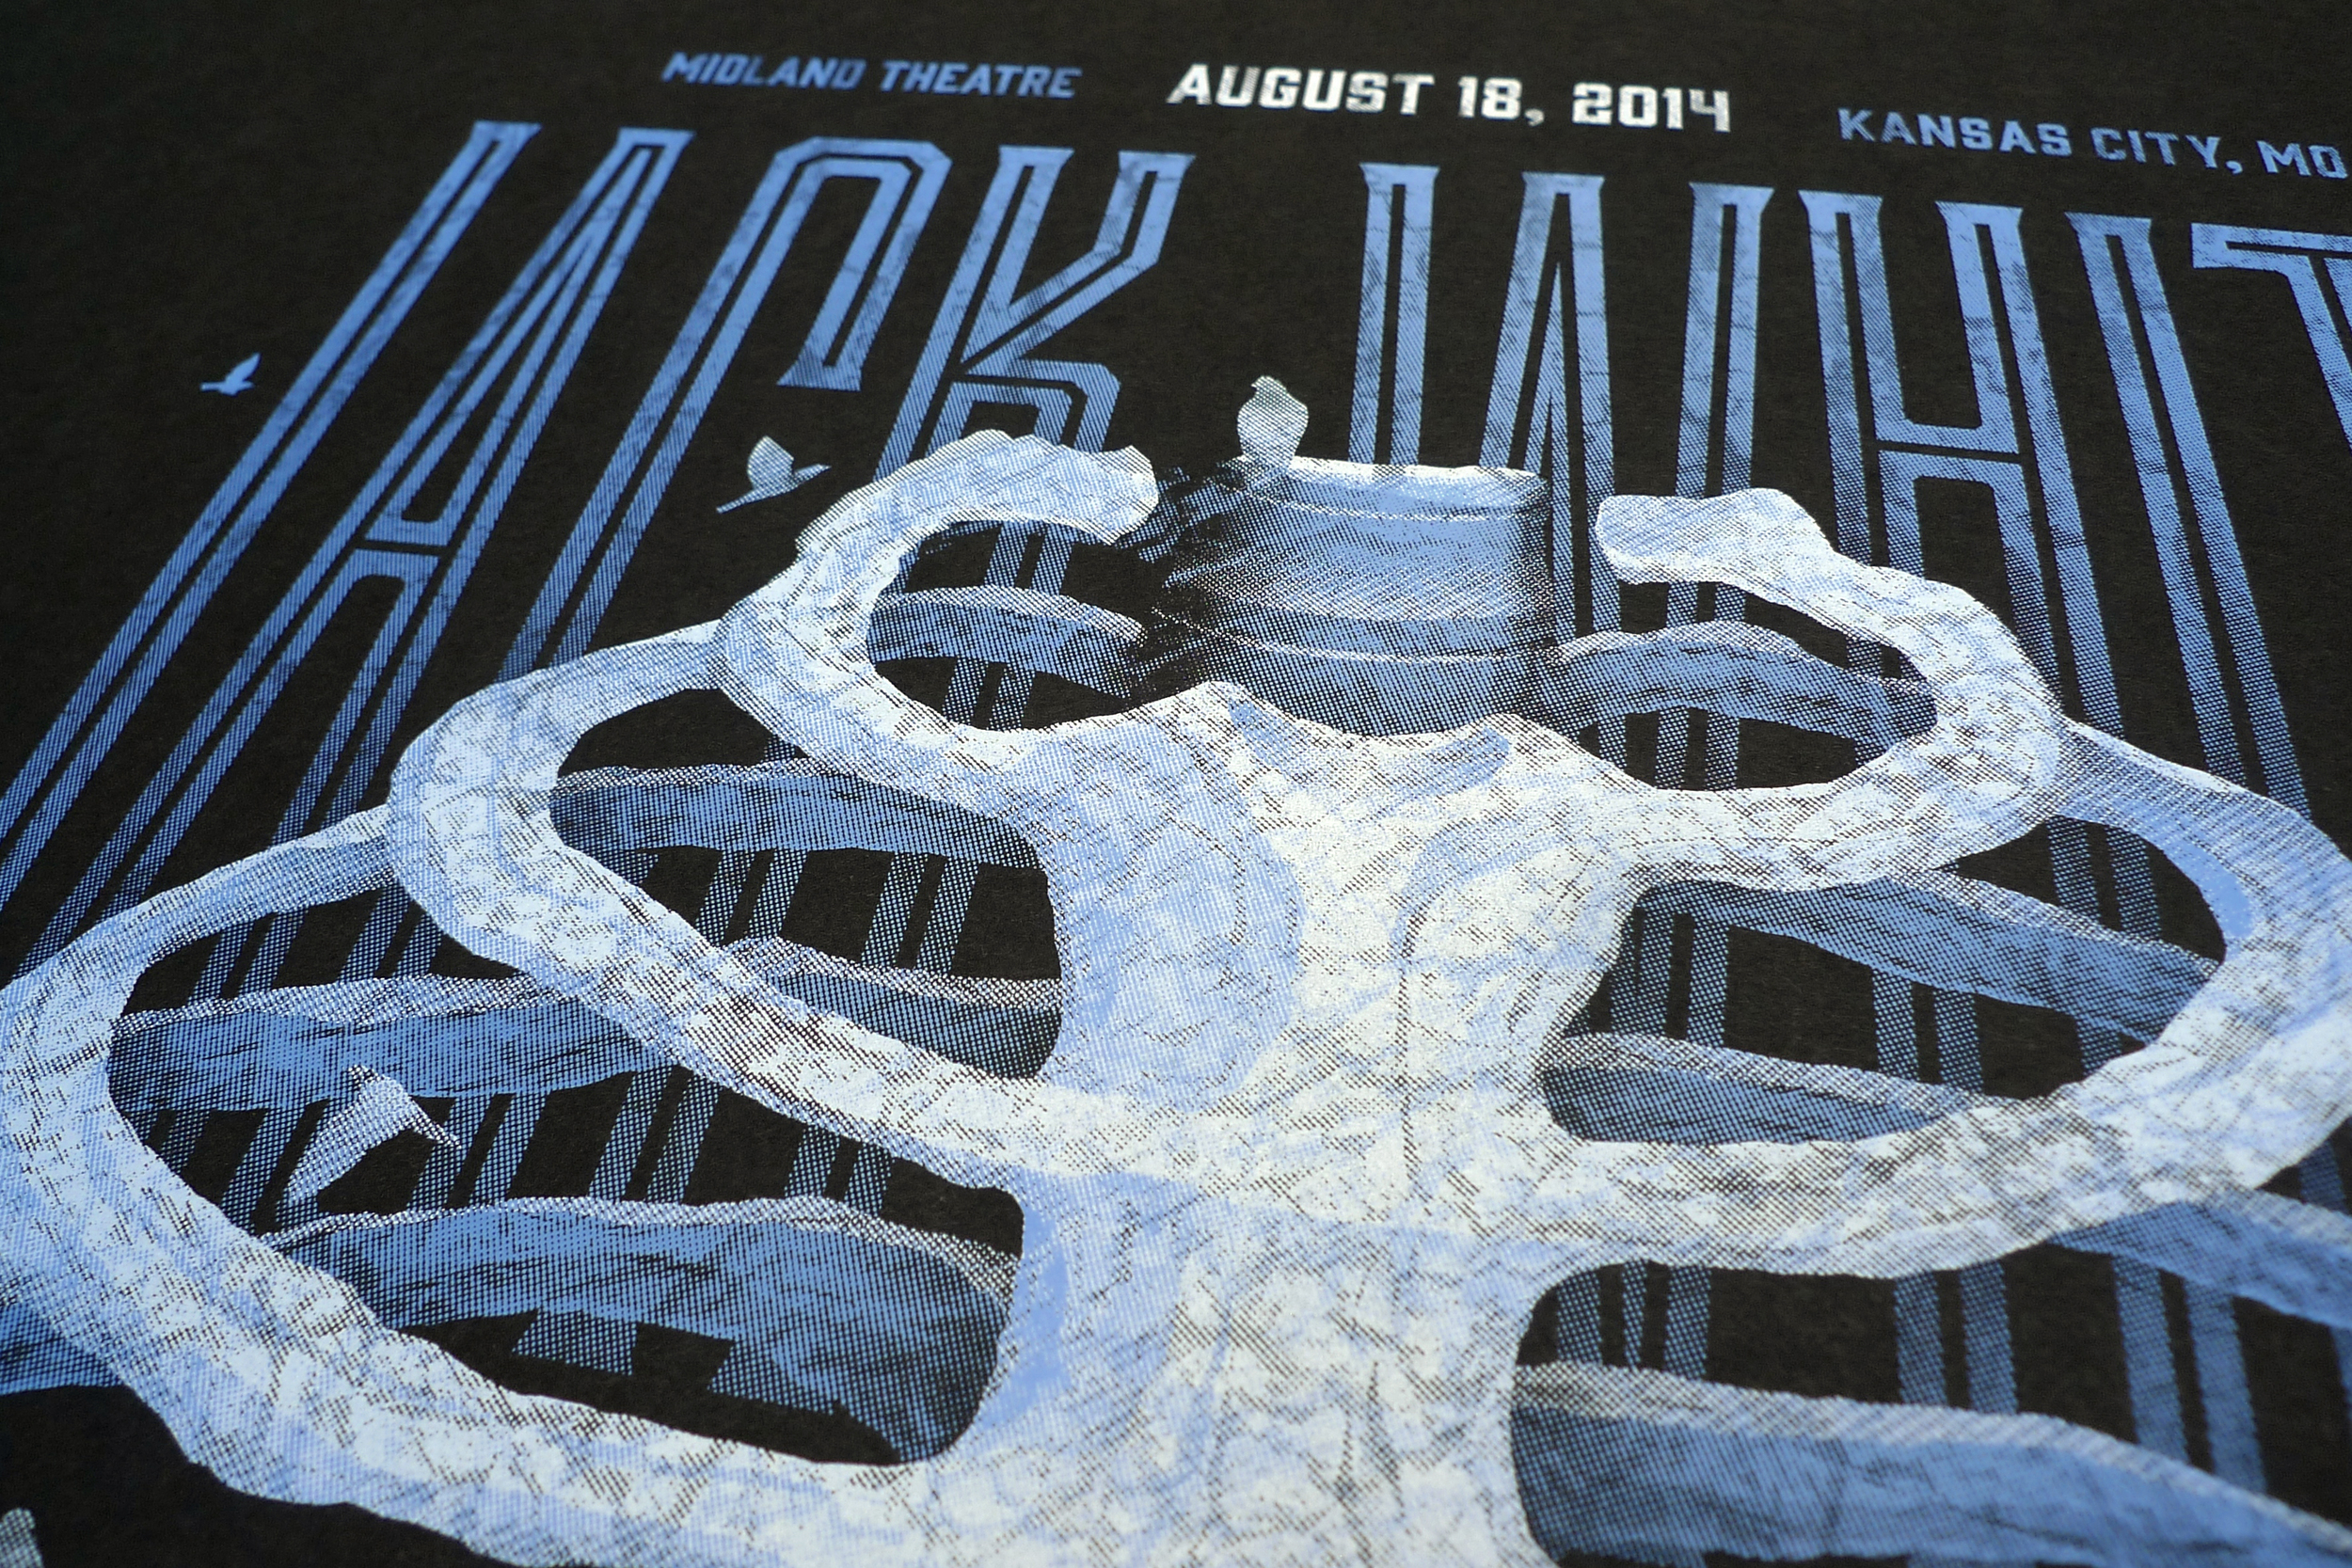 Jack White // Kansas City, MO Poster by DKNG